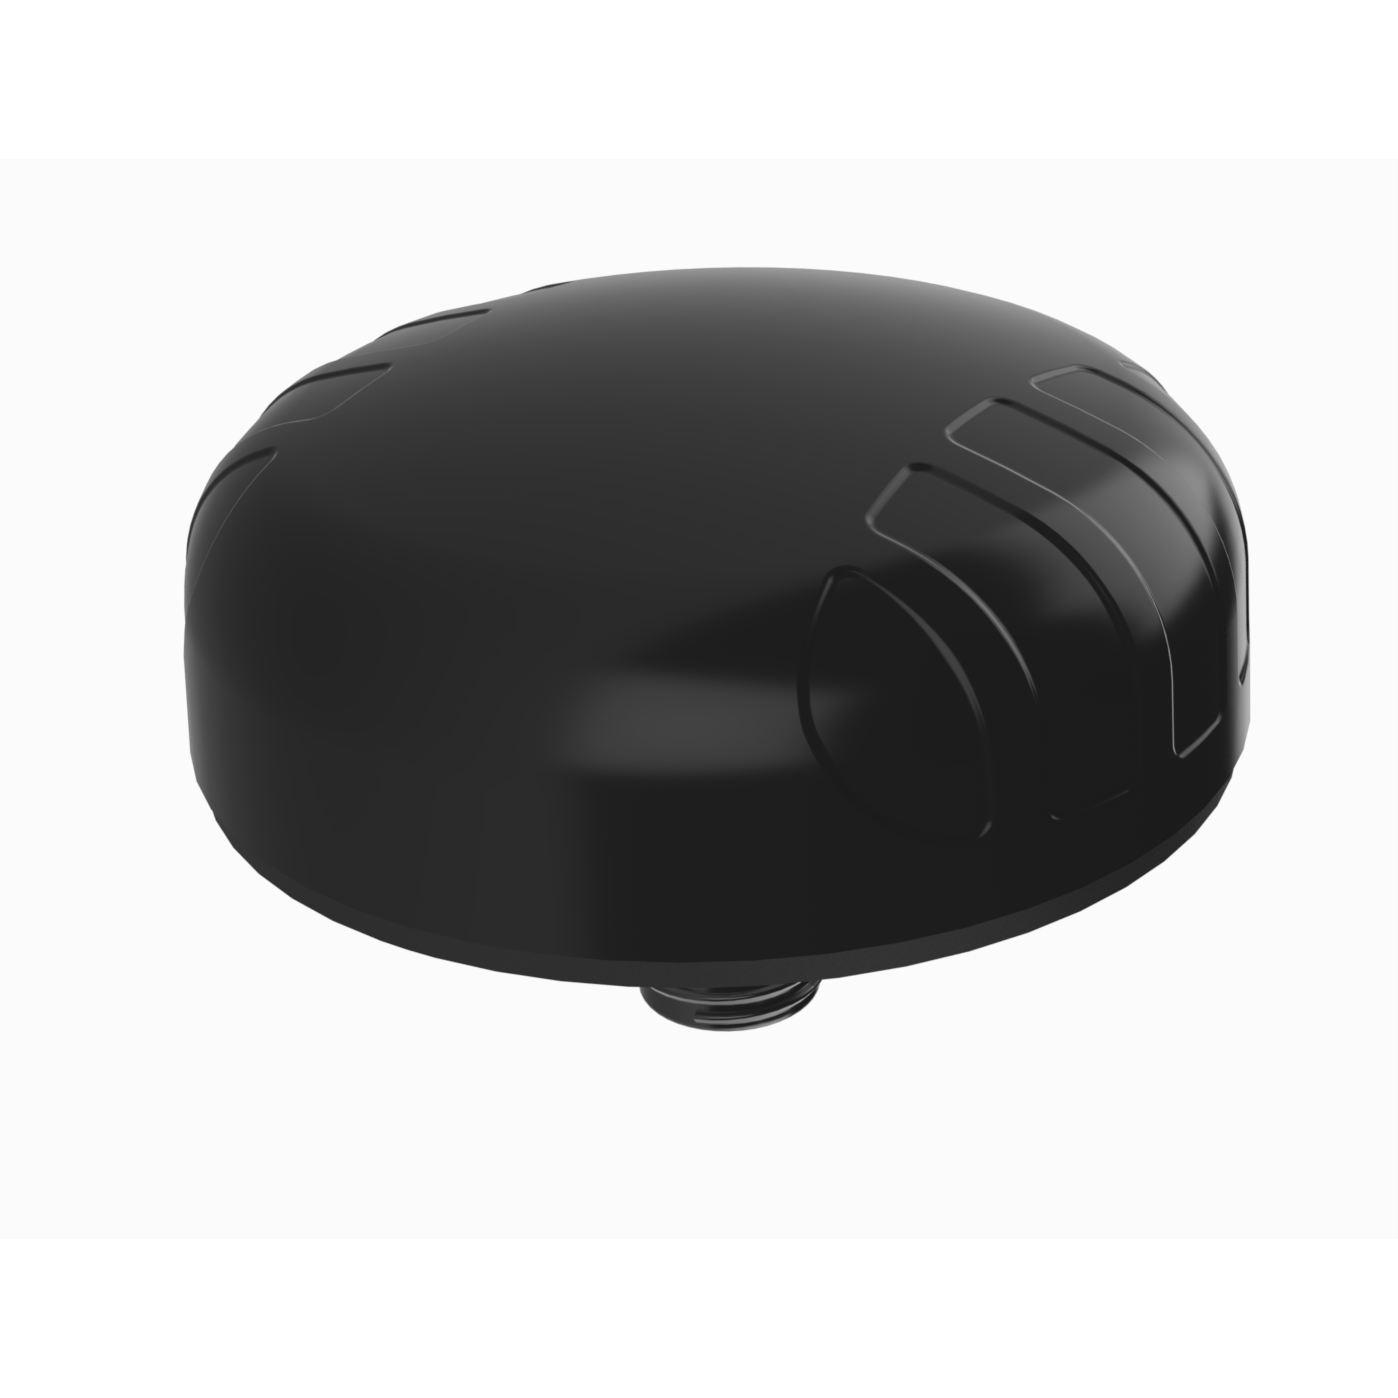 PUCK-12 HIGH PERFORMANCE, SMALL SIZE ANTENNA; 2×2 MIMO LTE: 690 MHZ – 3800 MHZ